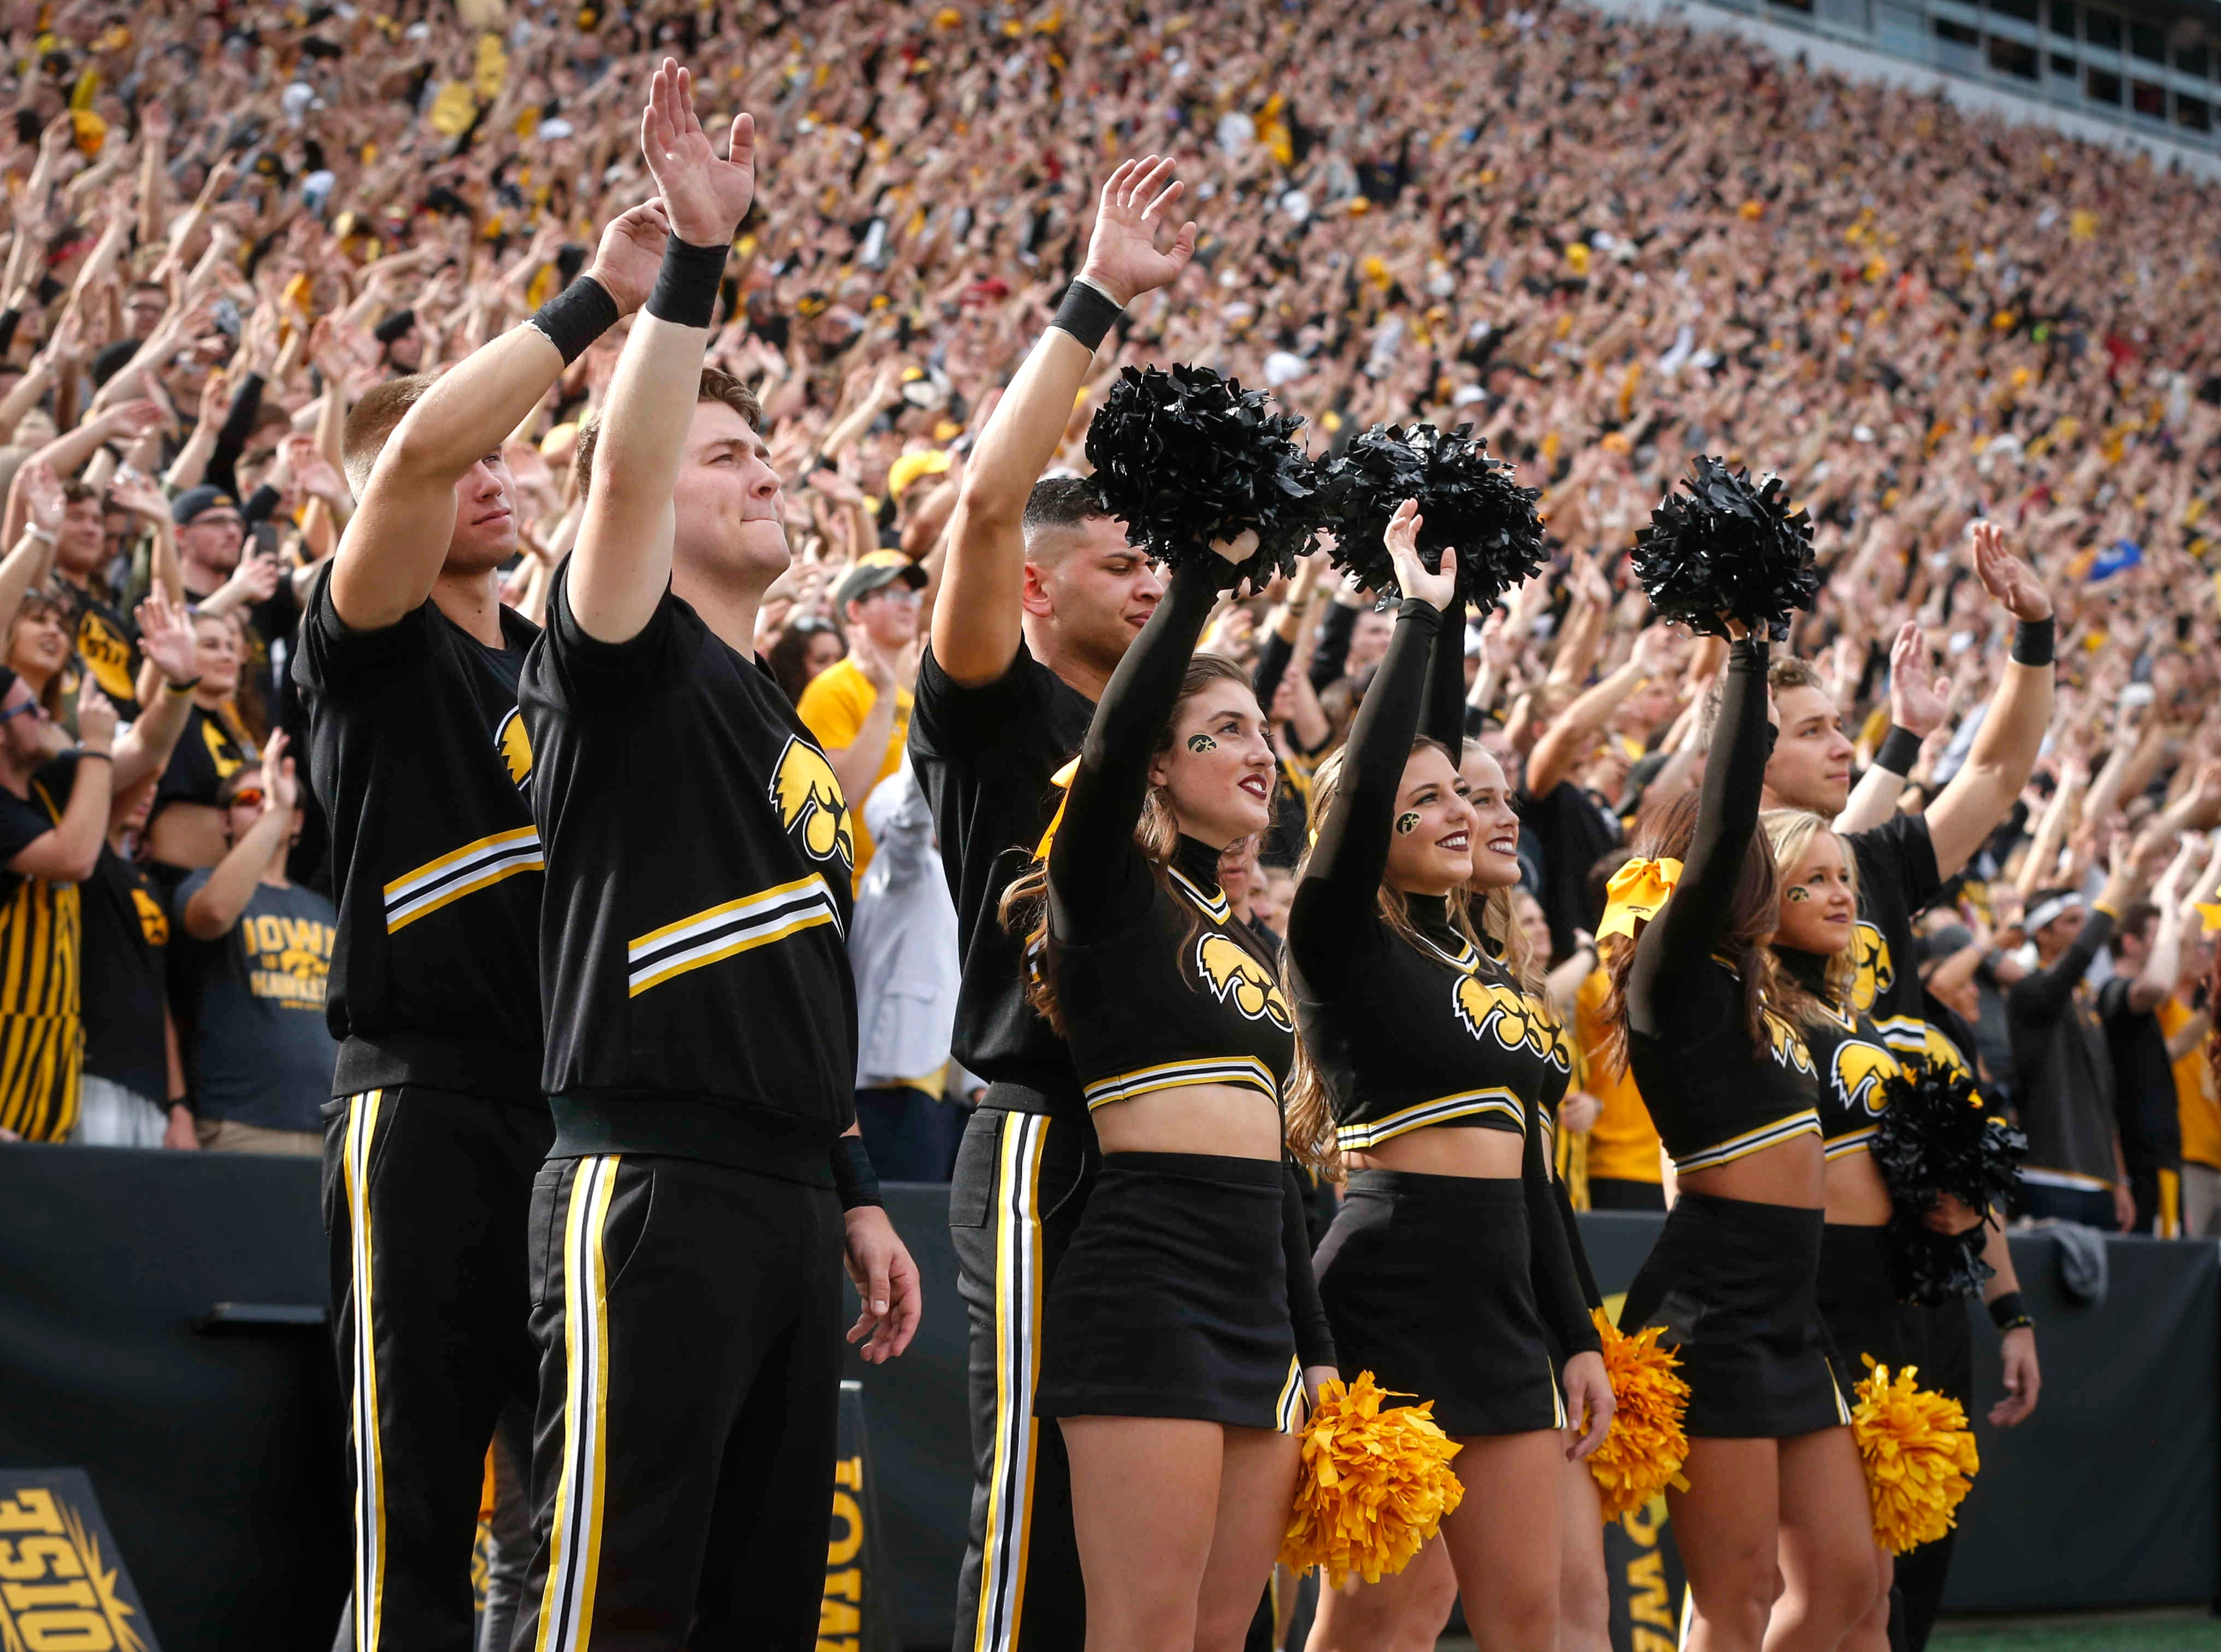 Iowa cheerleaders wave at the end of the first quarter against Iowa State on Saturday, Sept. 8, 2018, at Kinnick Stadium in Iowa City.